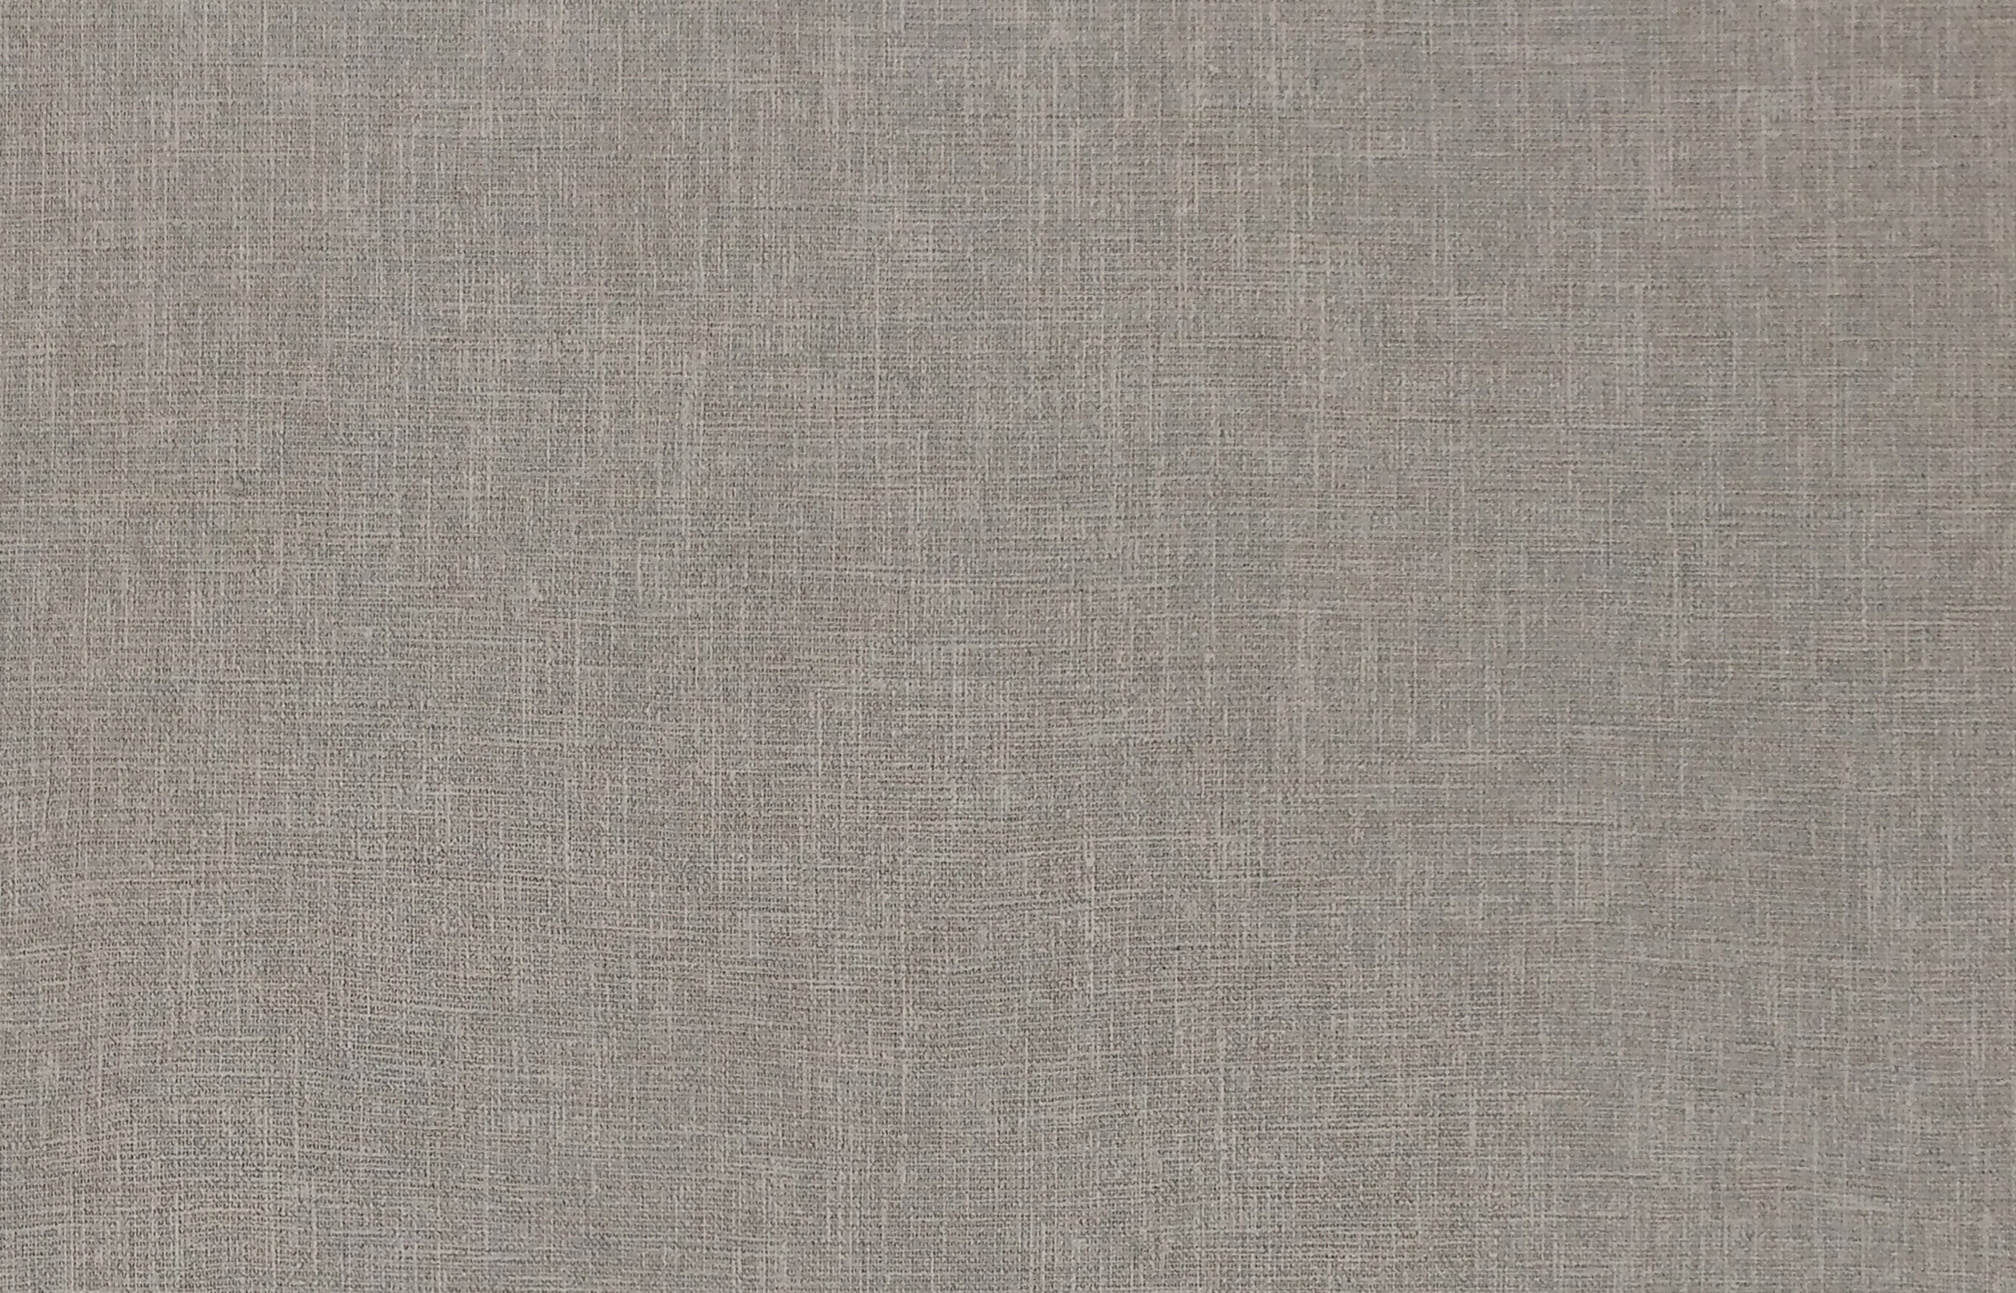 Texture - Fabric - luGher Texture Library